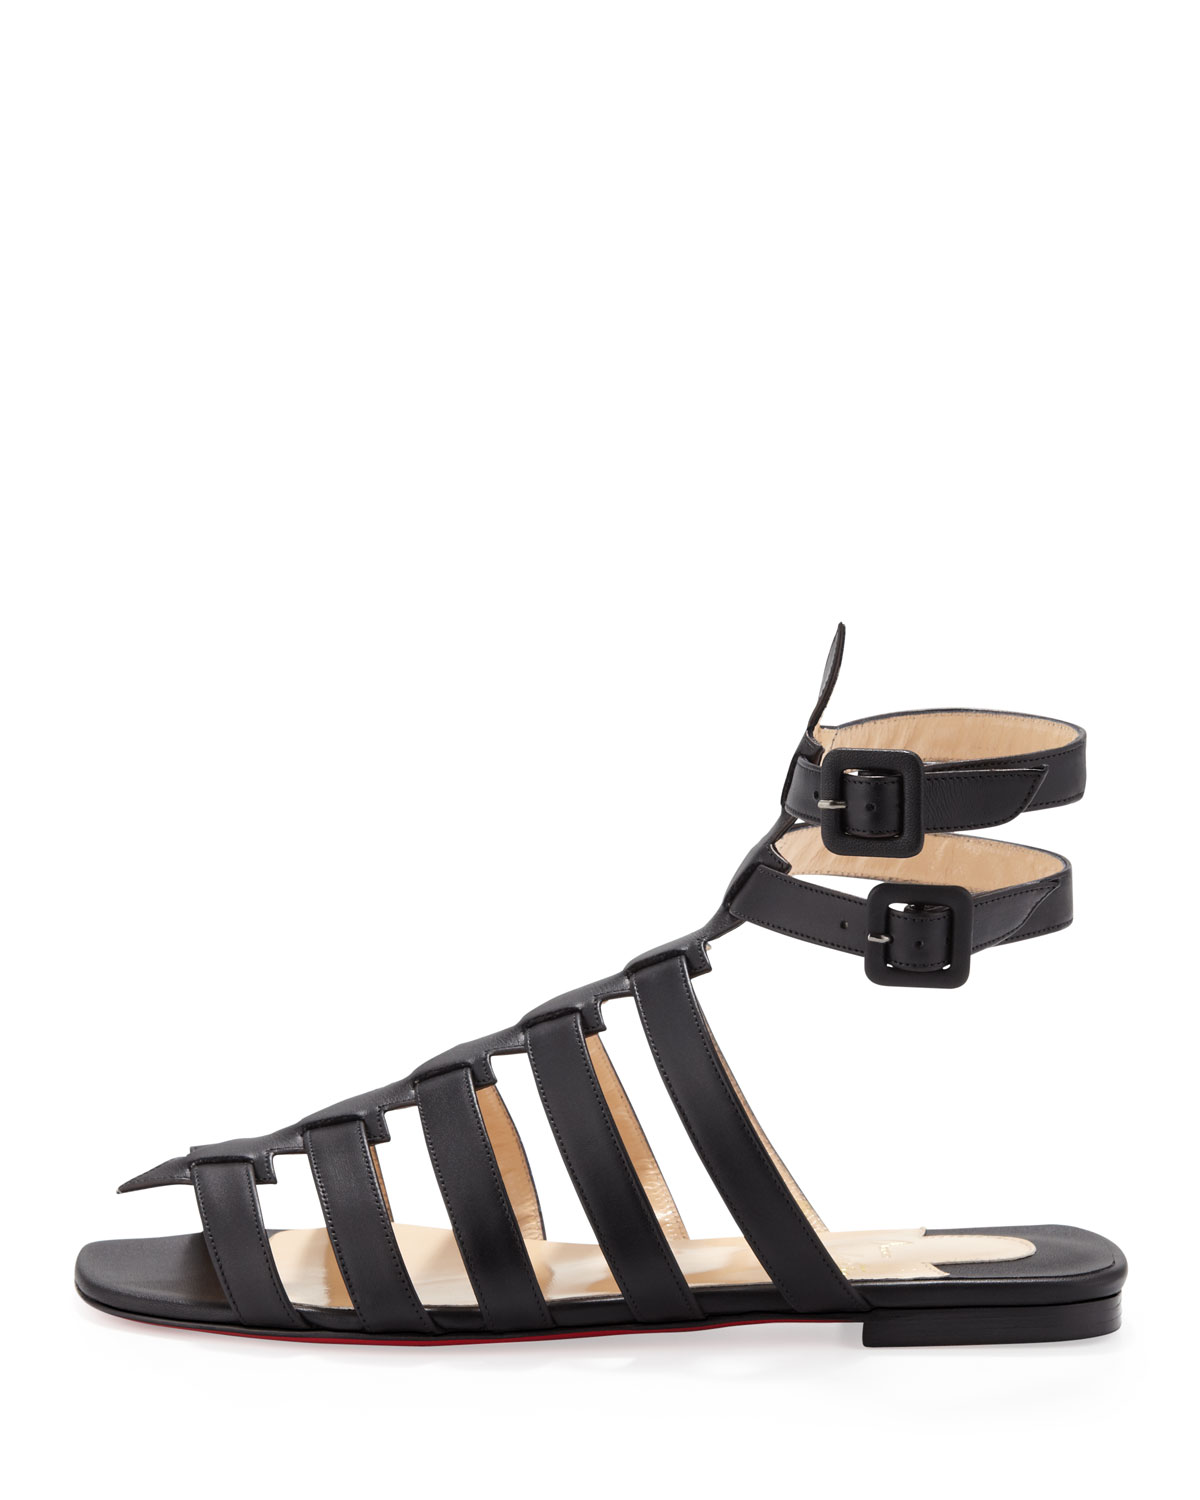 eac8158ef6c christian louboutin caged sandals Black suede